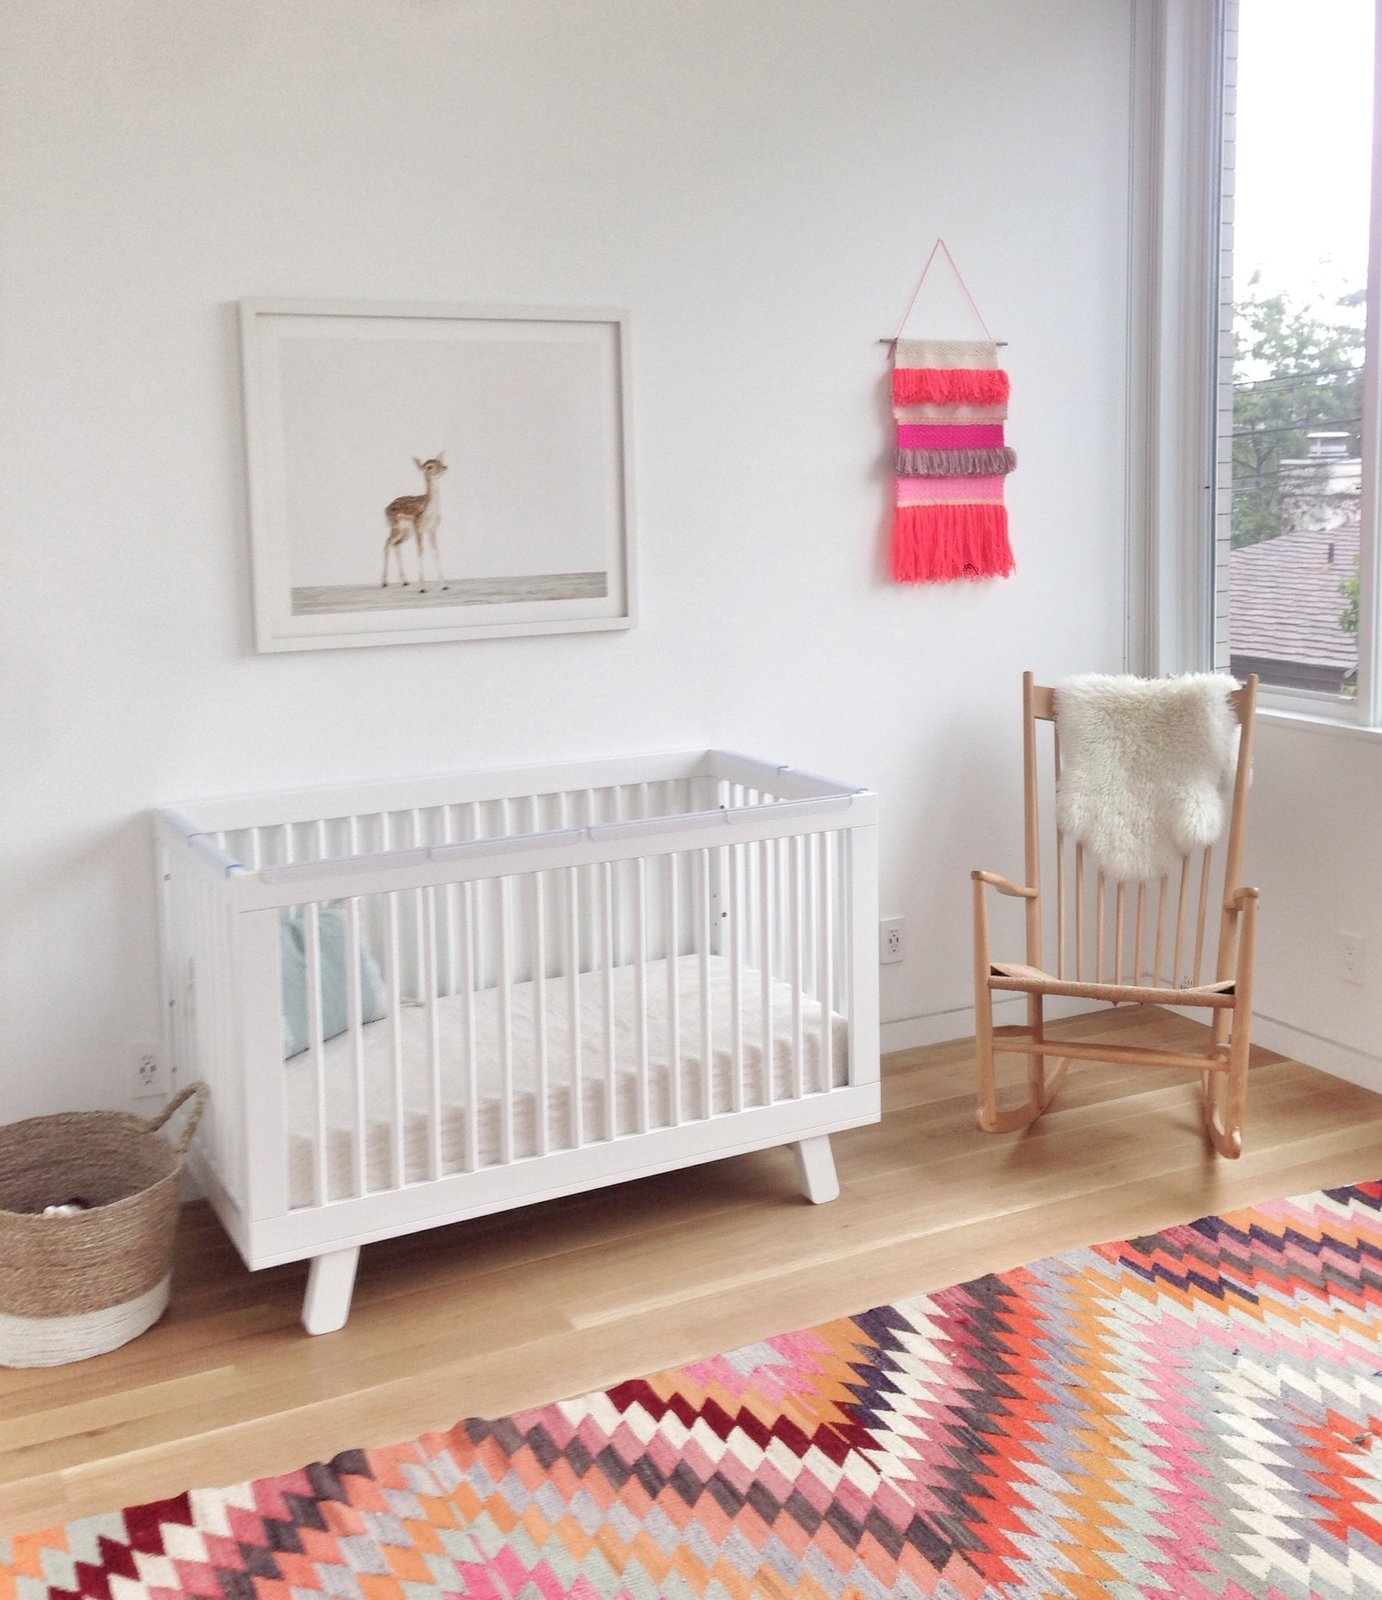 Kids Room, Bed, Light Hardwood Floor, and Bedroom Room Type The resident's daughter, Clara, has a Hudson crib by Babyletto, a vintage J16 rocker by Hans Wegner, and a vintage rug in her bedroom.  Best Photos